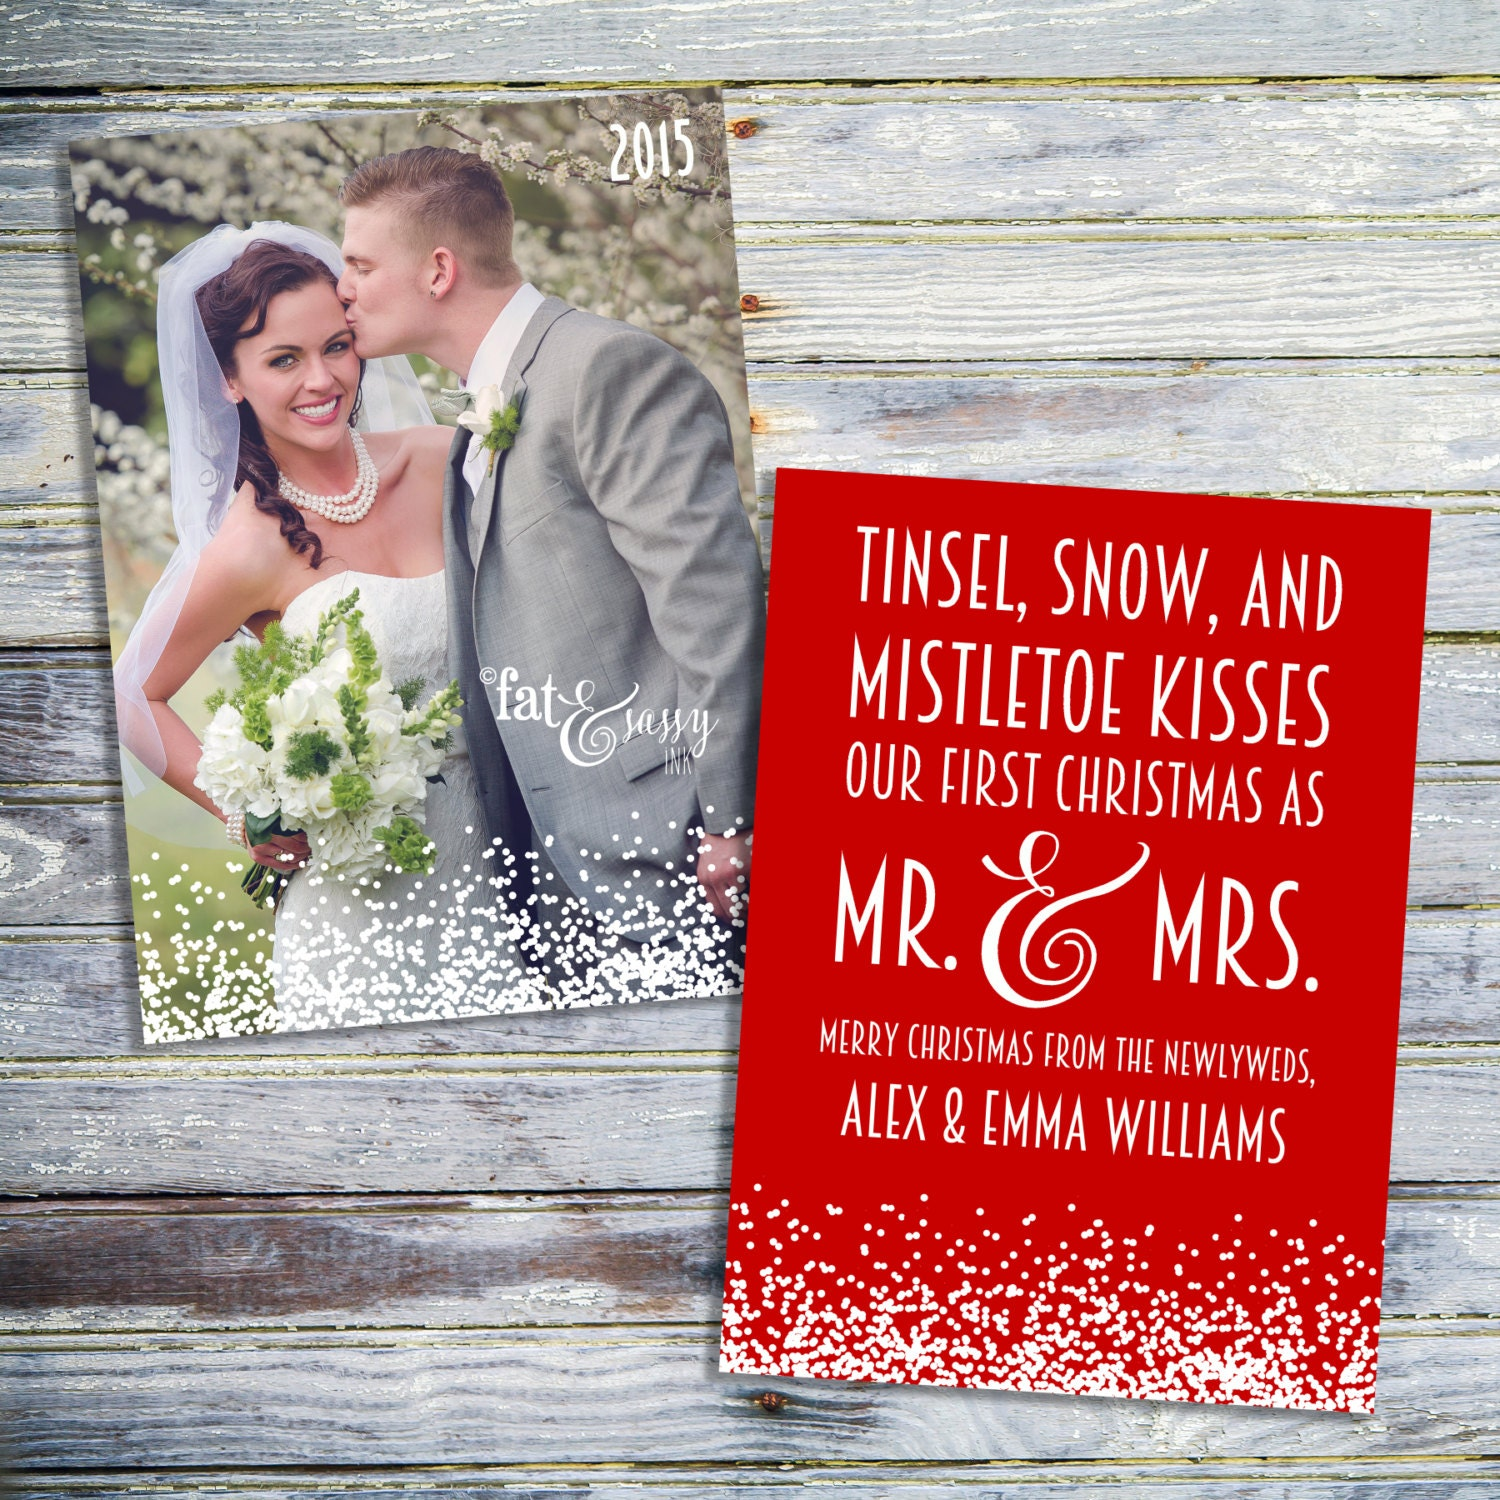 Our First Christmas As Mr. And Mrs. Card Just Married | Etsy